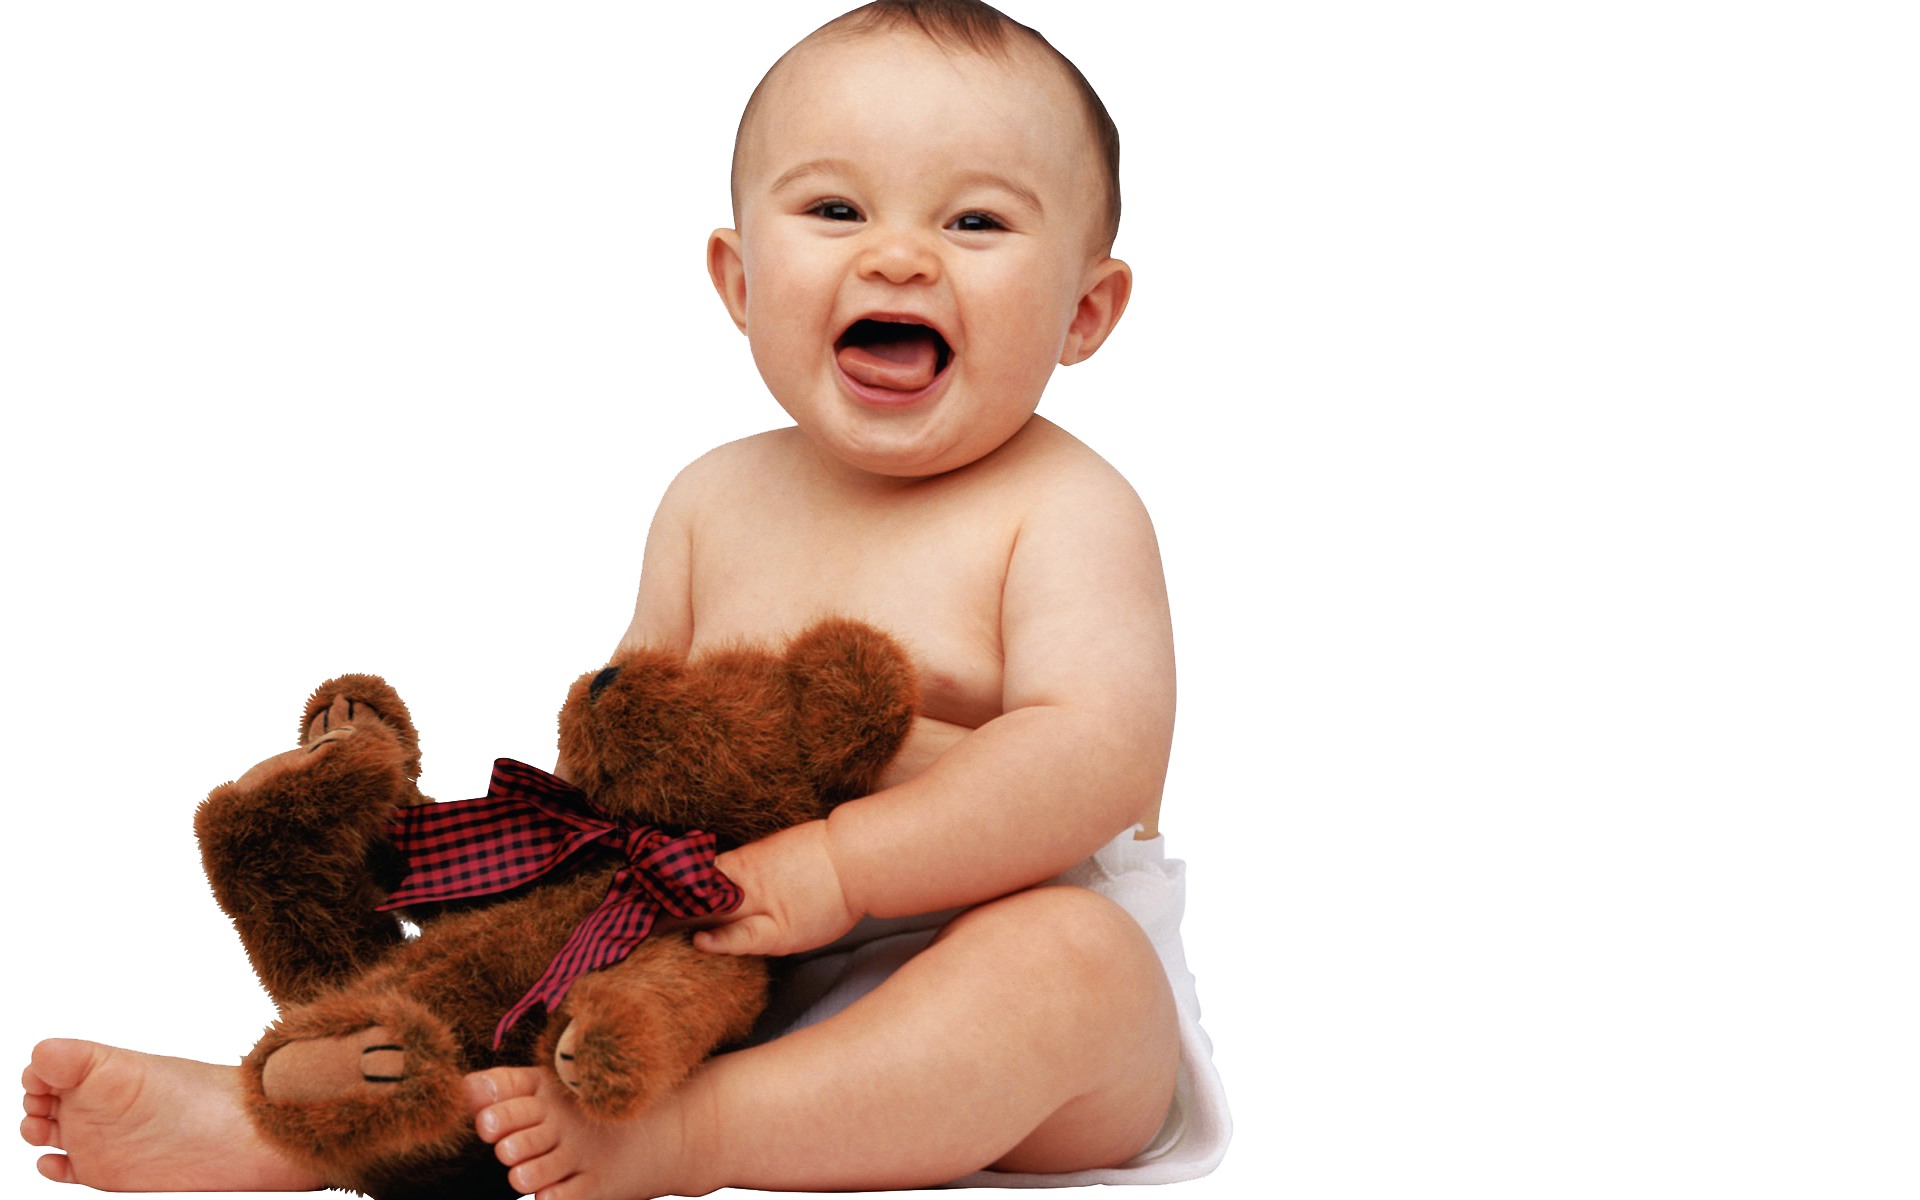 cute_baby_with_teddy-wide-copy